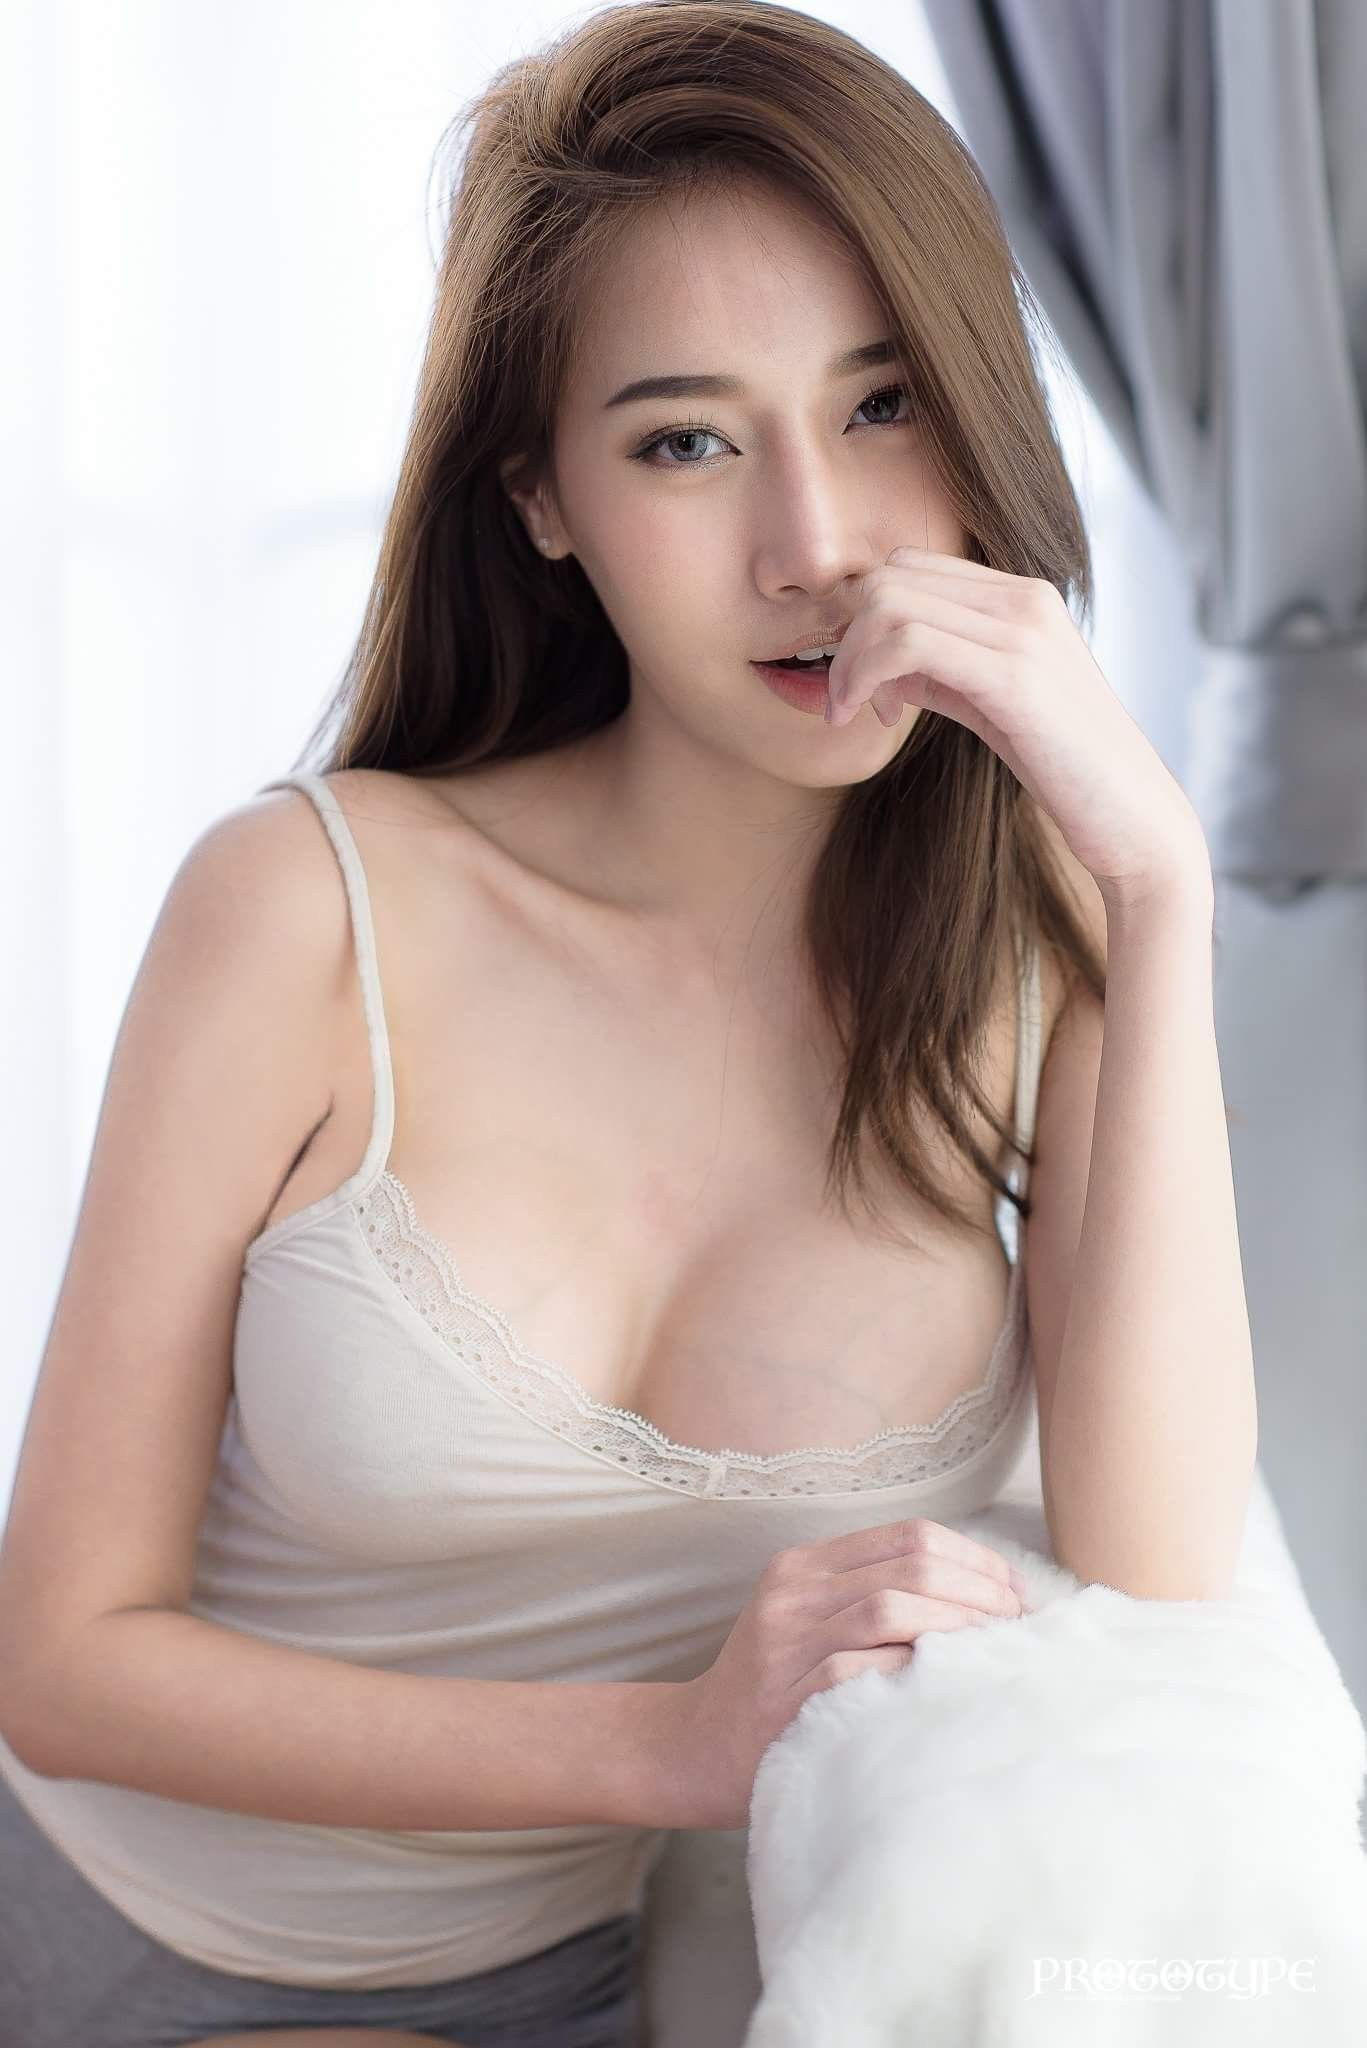 Something also Beauty korean pornstar remarkable